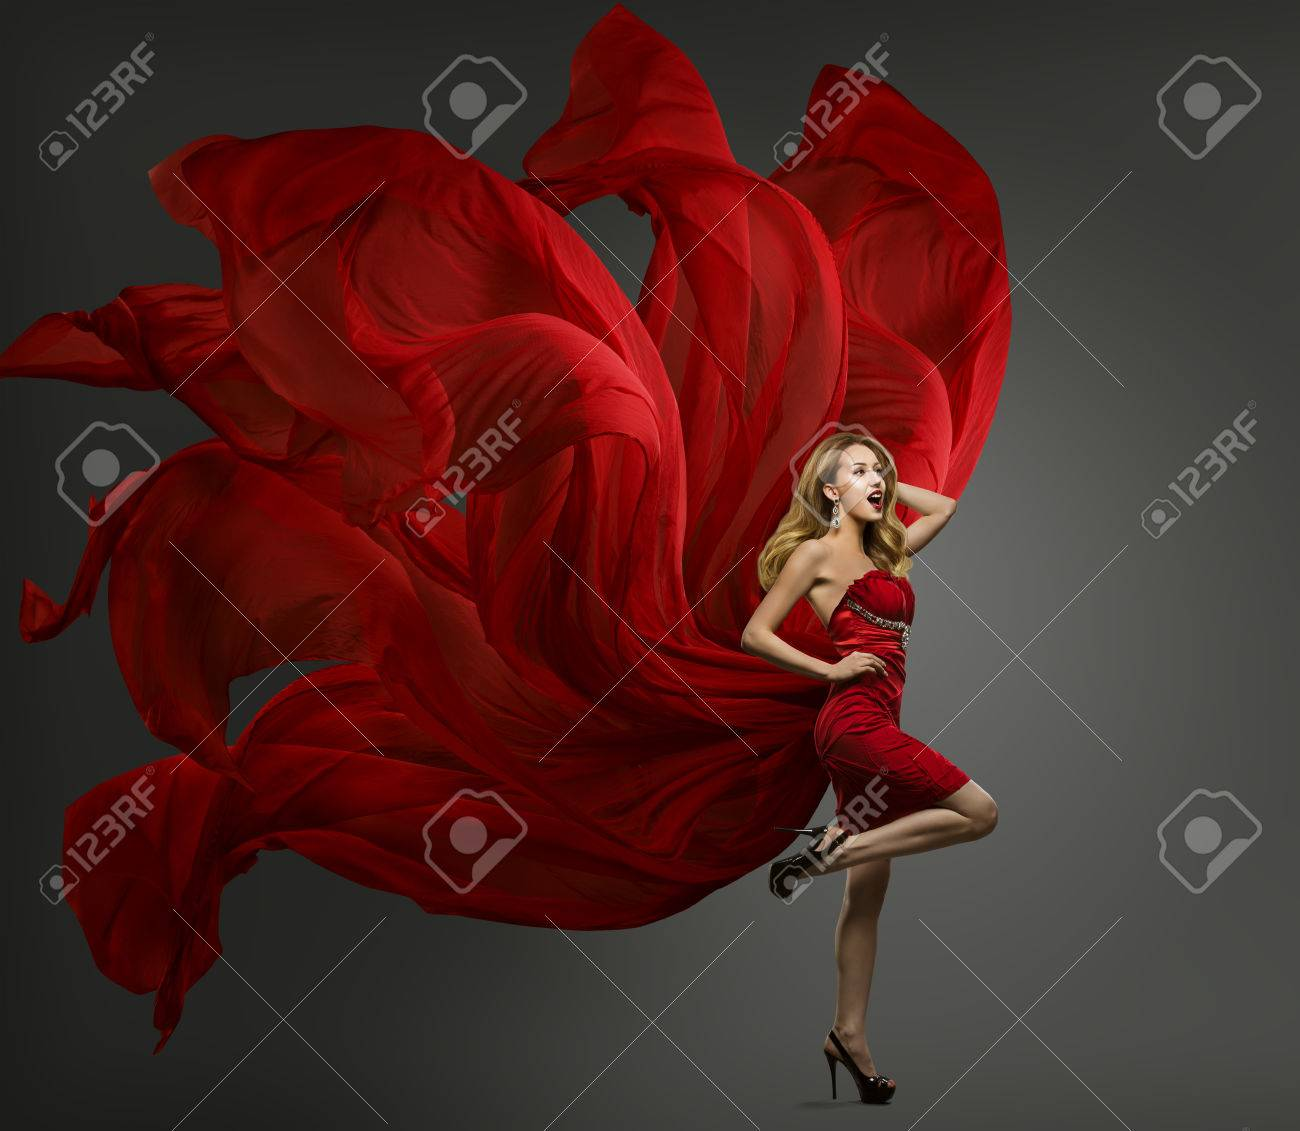 d8633a3b186d Fashion Model Red Dress, Woman Dancing in Flying Fabric Gown, Waving  Fluttering Cloth Stock